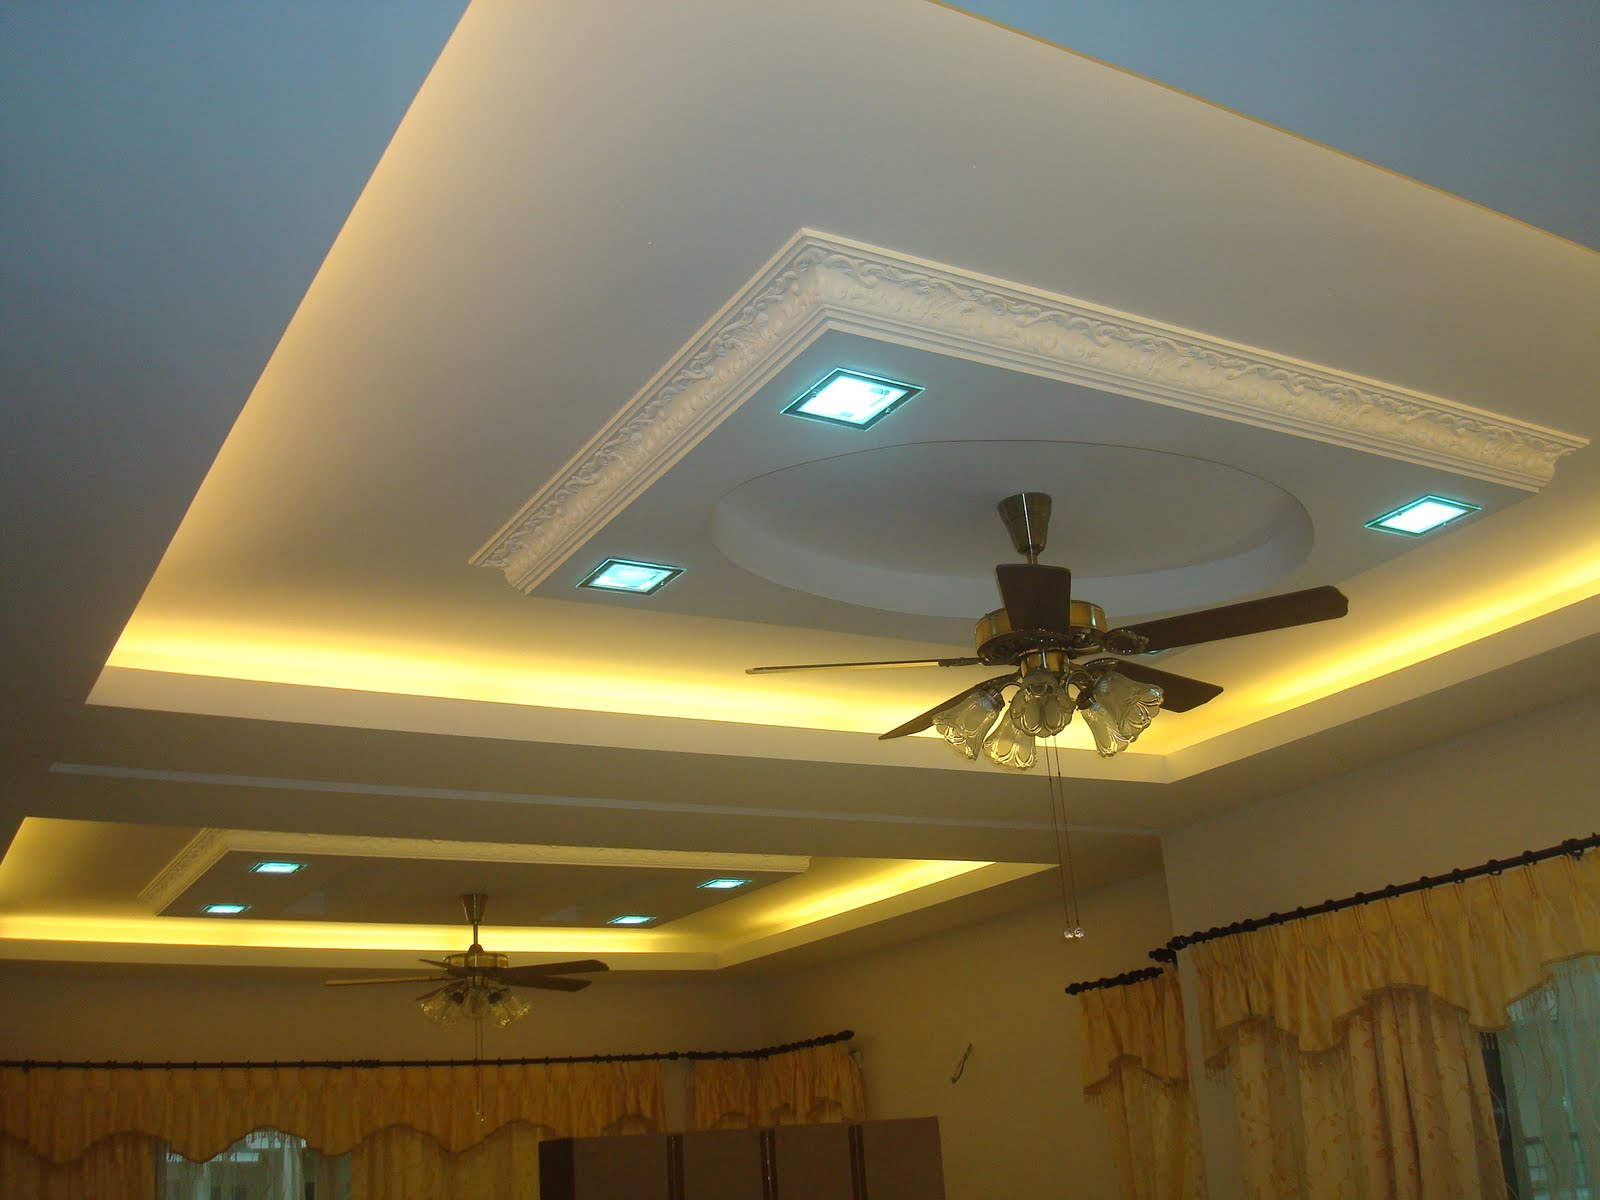 Fall ceiling designs living room india for Best fall ceiling designs